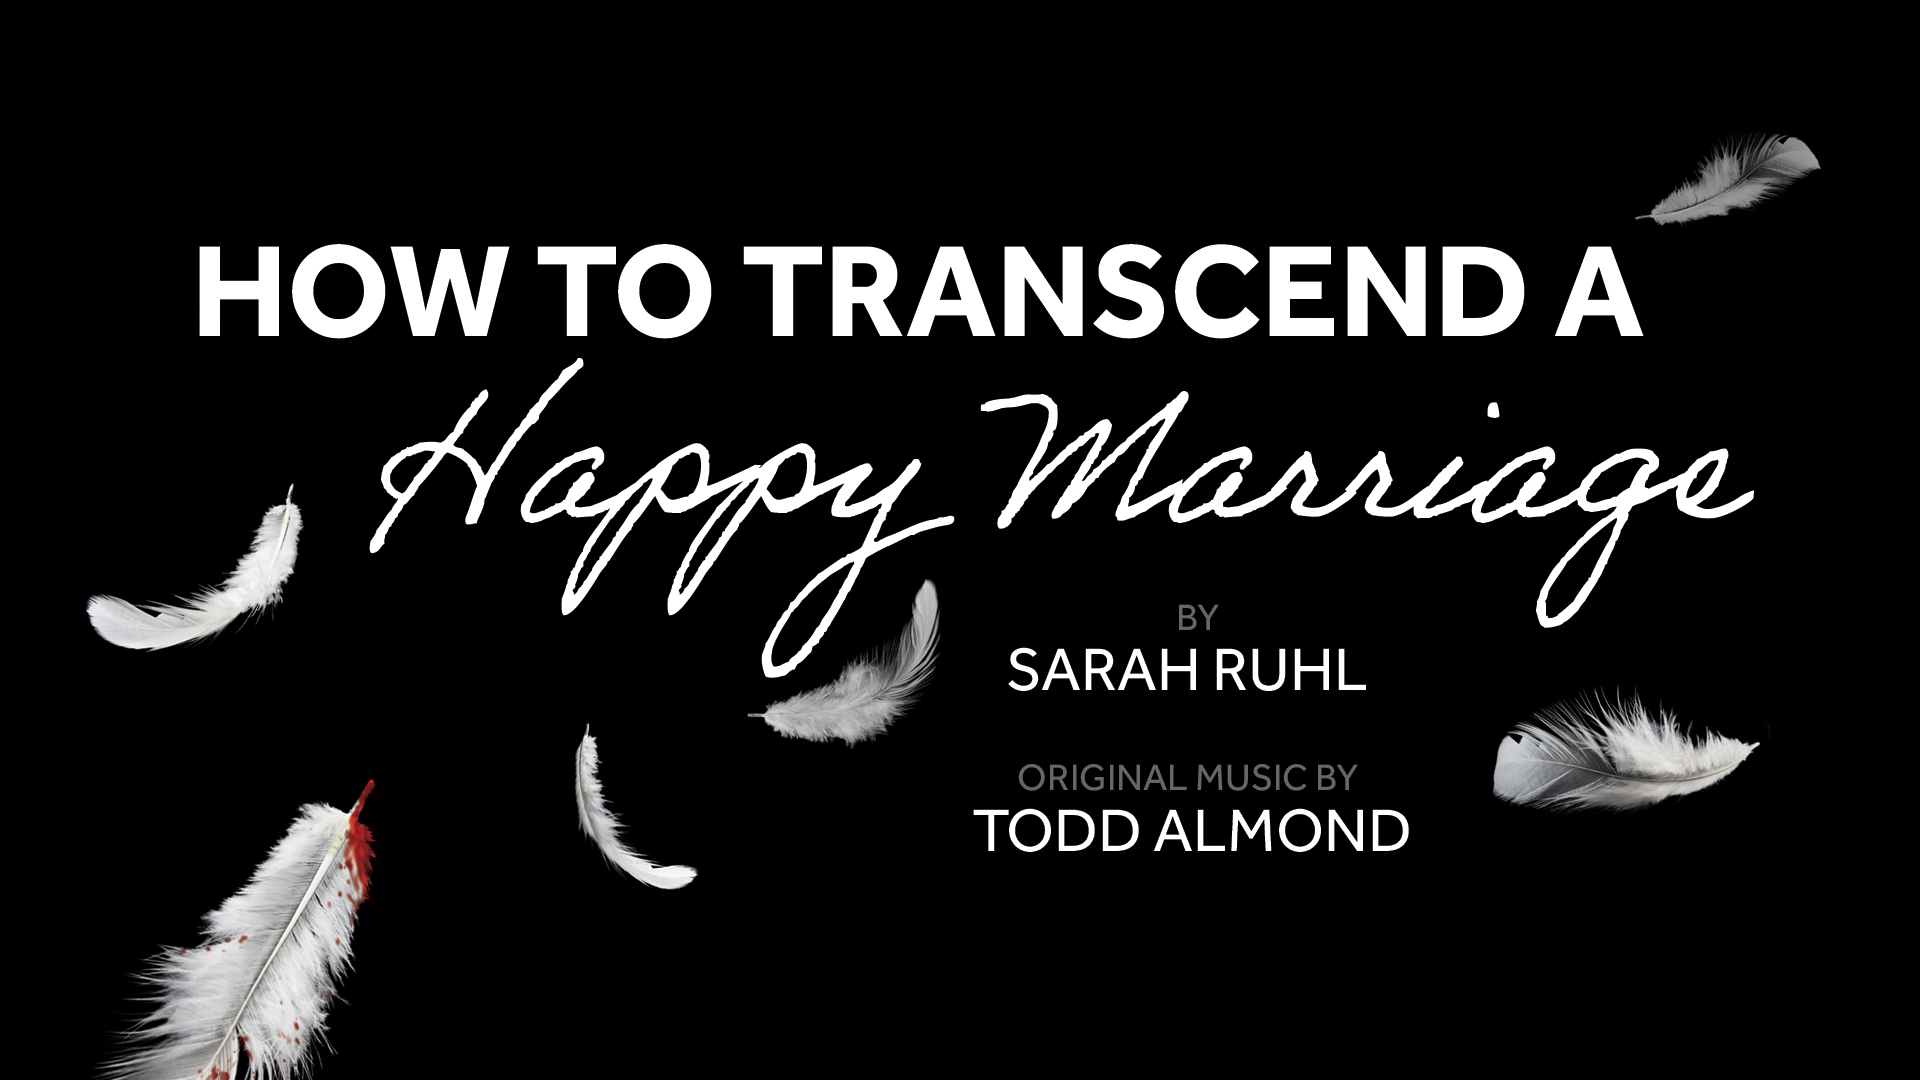 How to Transcend horizontal